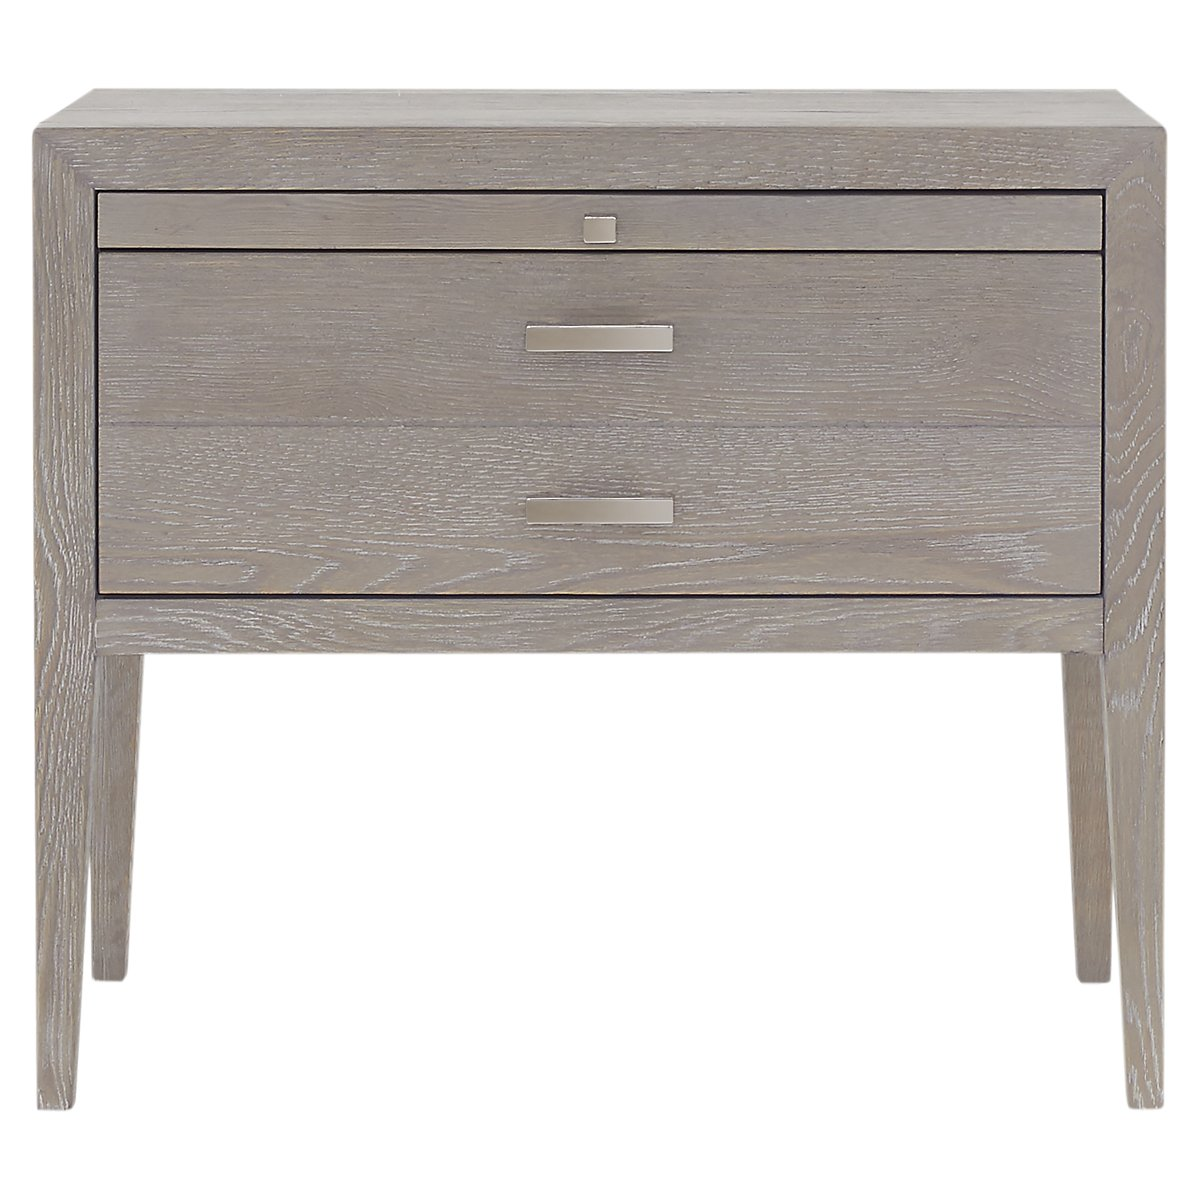 Berlin Light Tone Wood Nightstand Bedroom Nightstands City Furniture